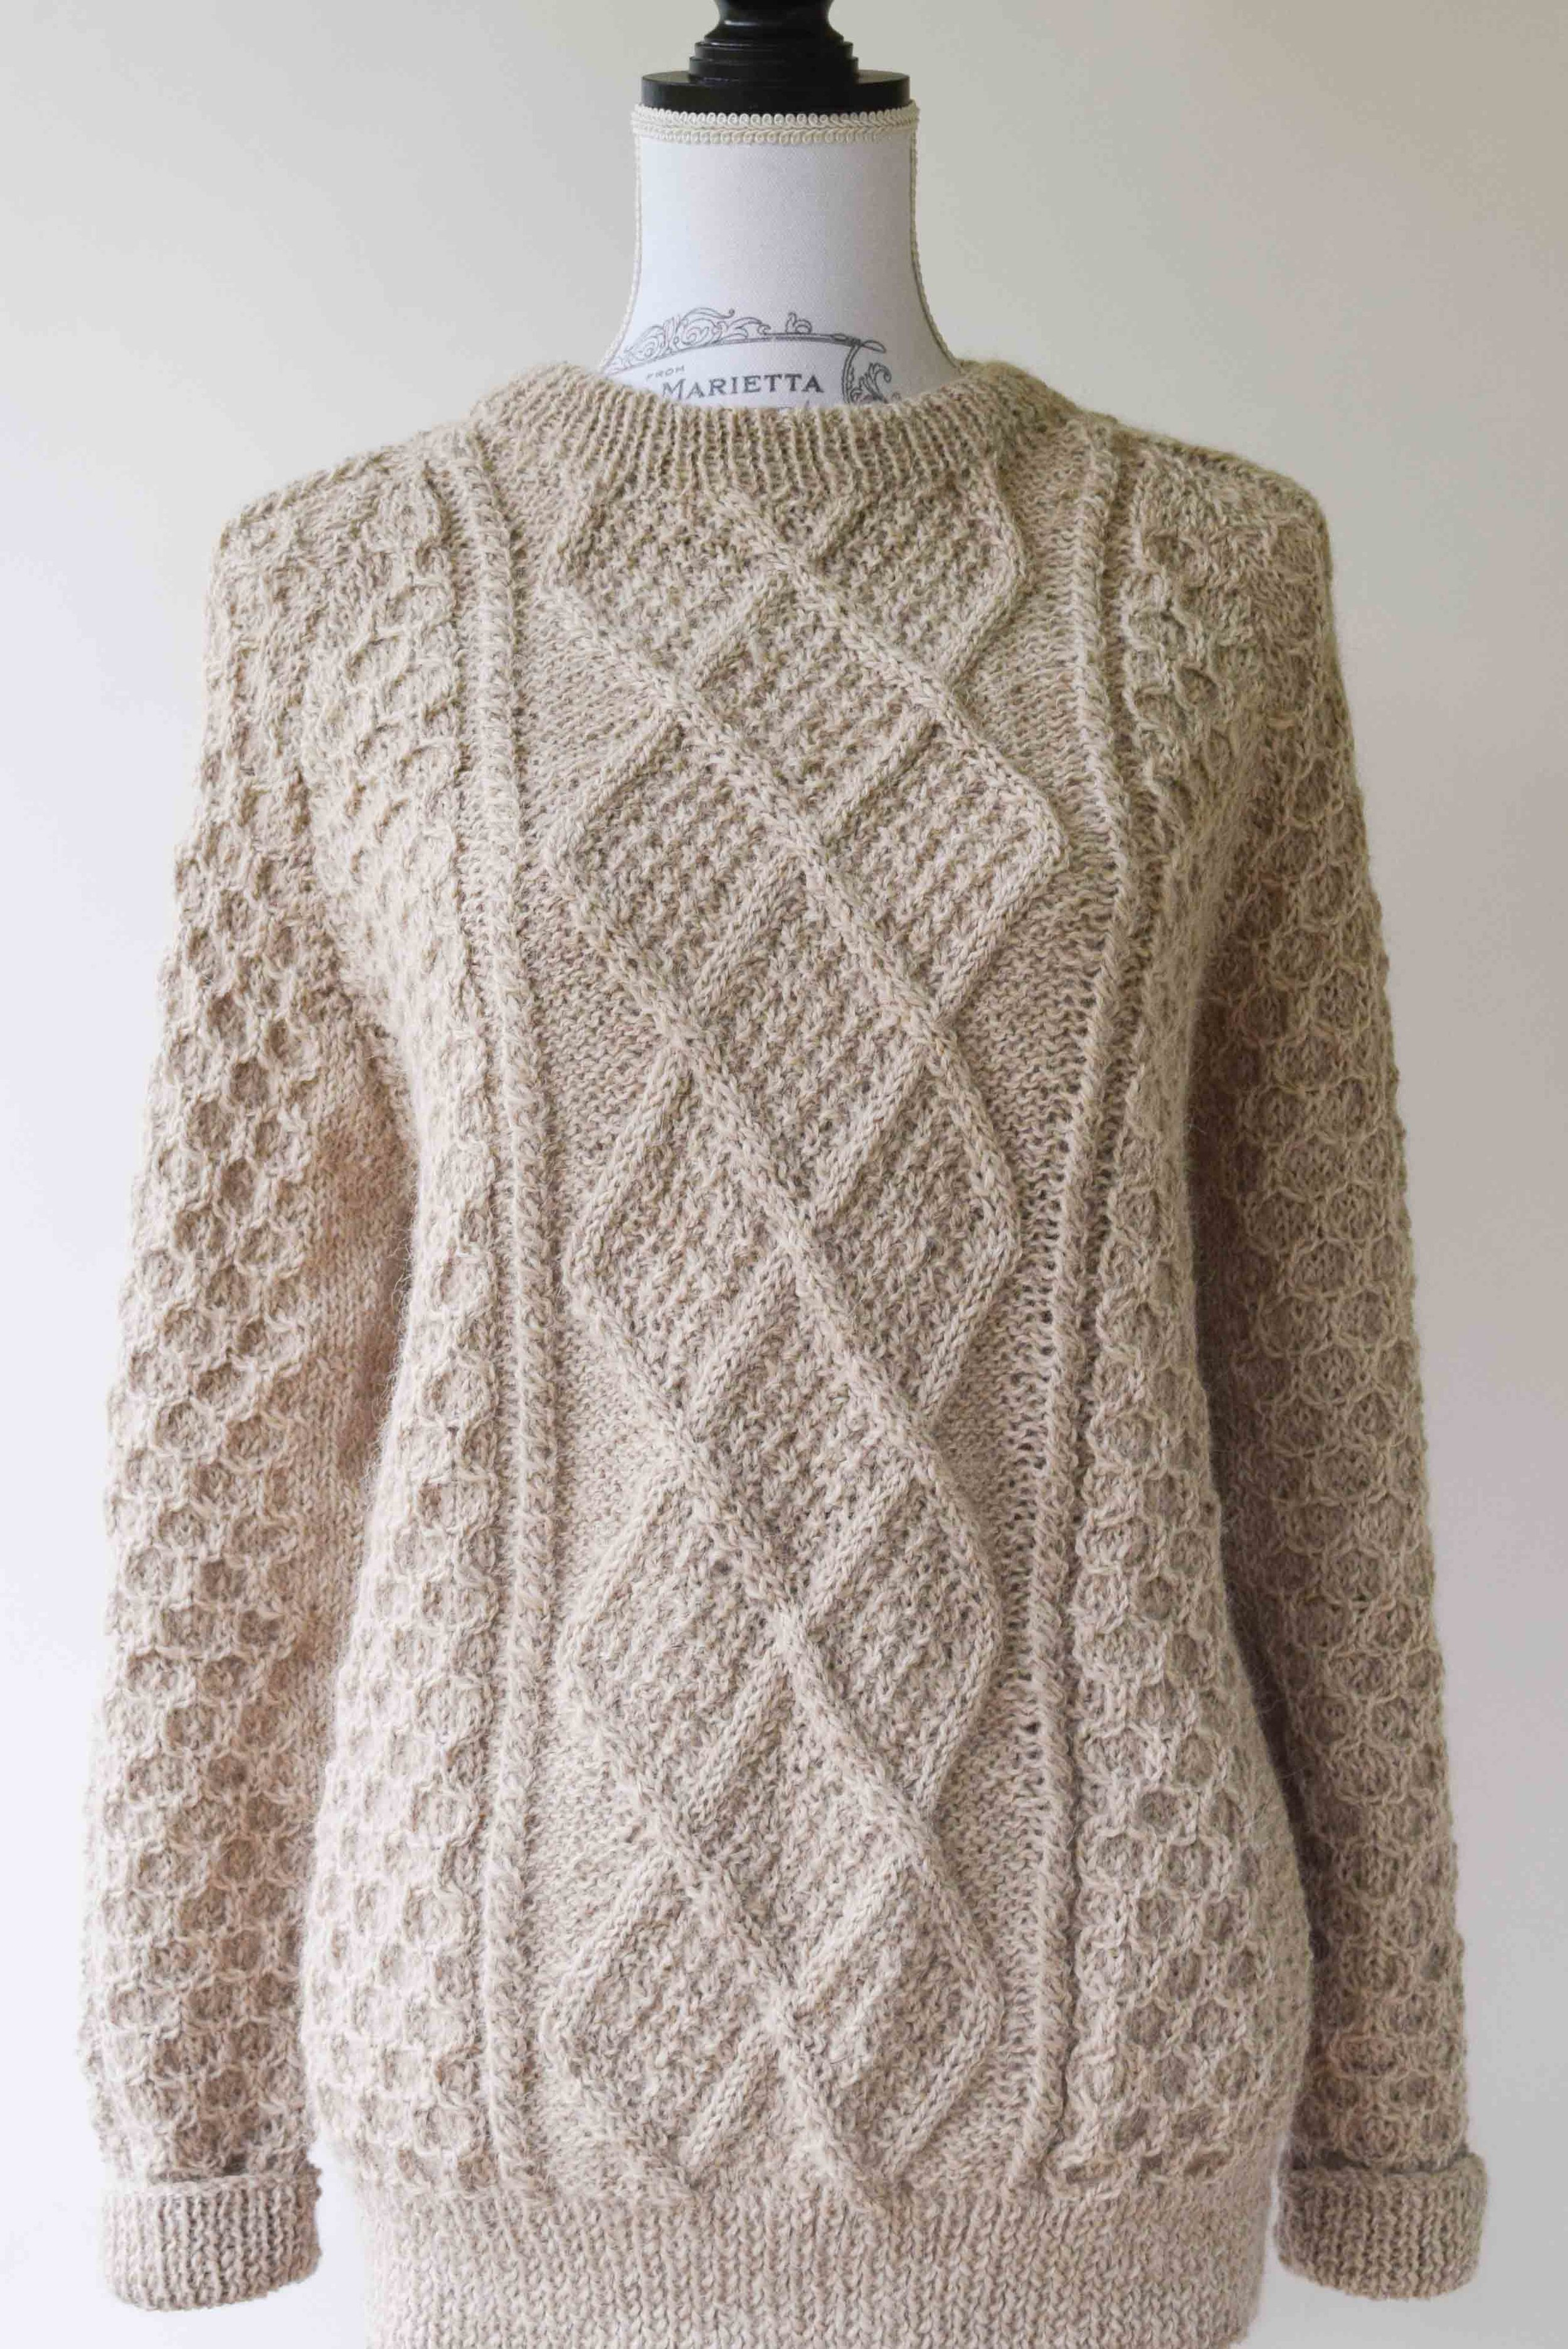 b55a313f6d33 HAND KNITTED ALPACA SWEATER - Toasted Almond Cable Pullover ...